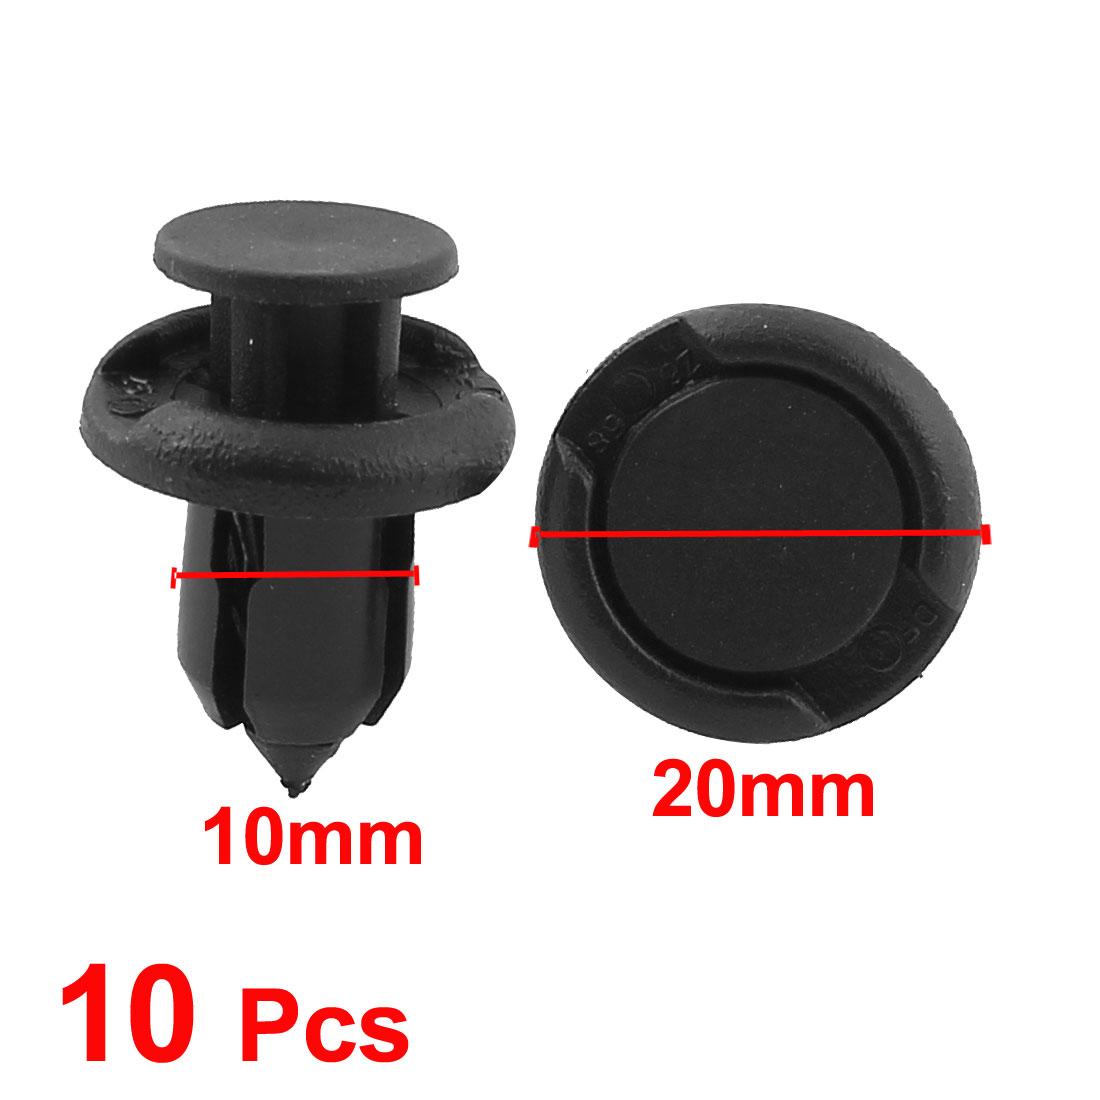 100 Pcs 10mm Hole Dia Black Plastic Rivets Fastener Car Push in Type Clips